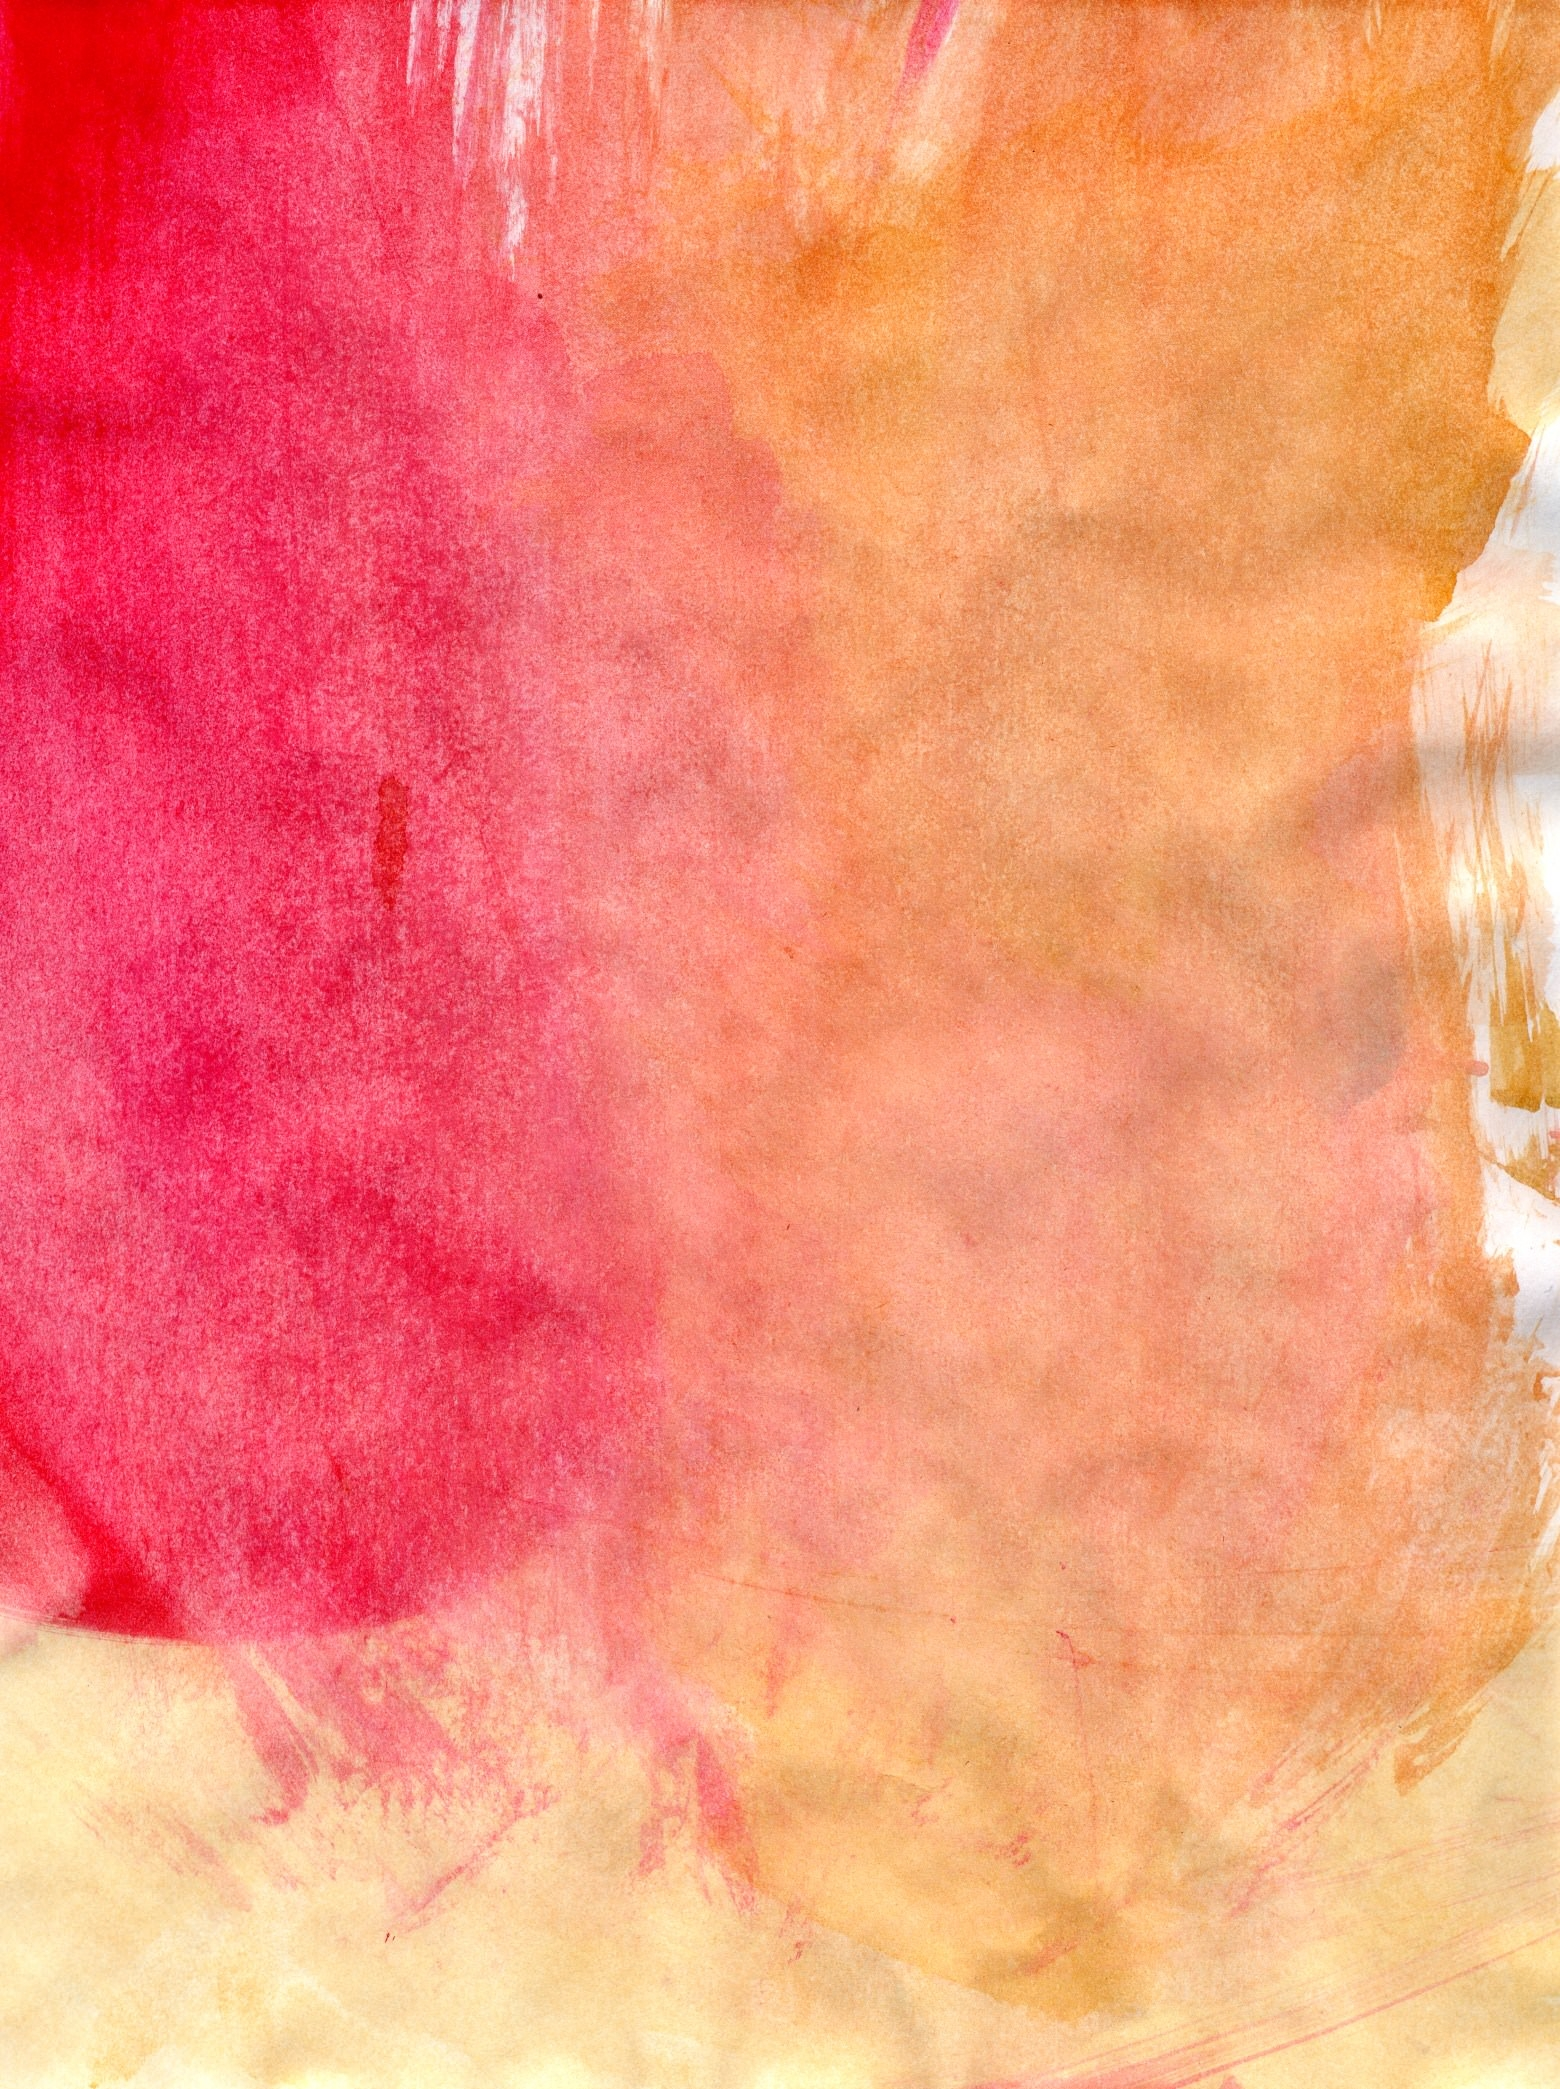 Download High Res Watercolor Paint Texture Background